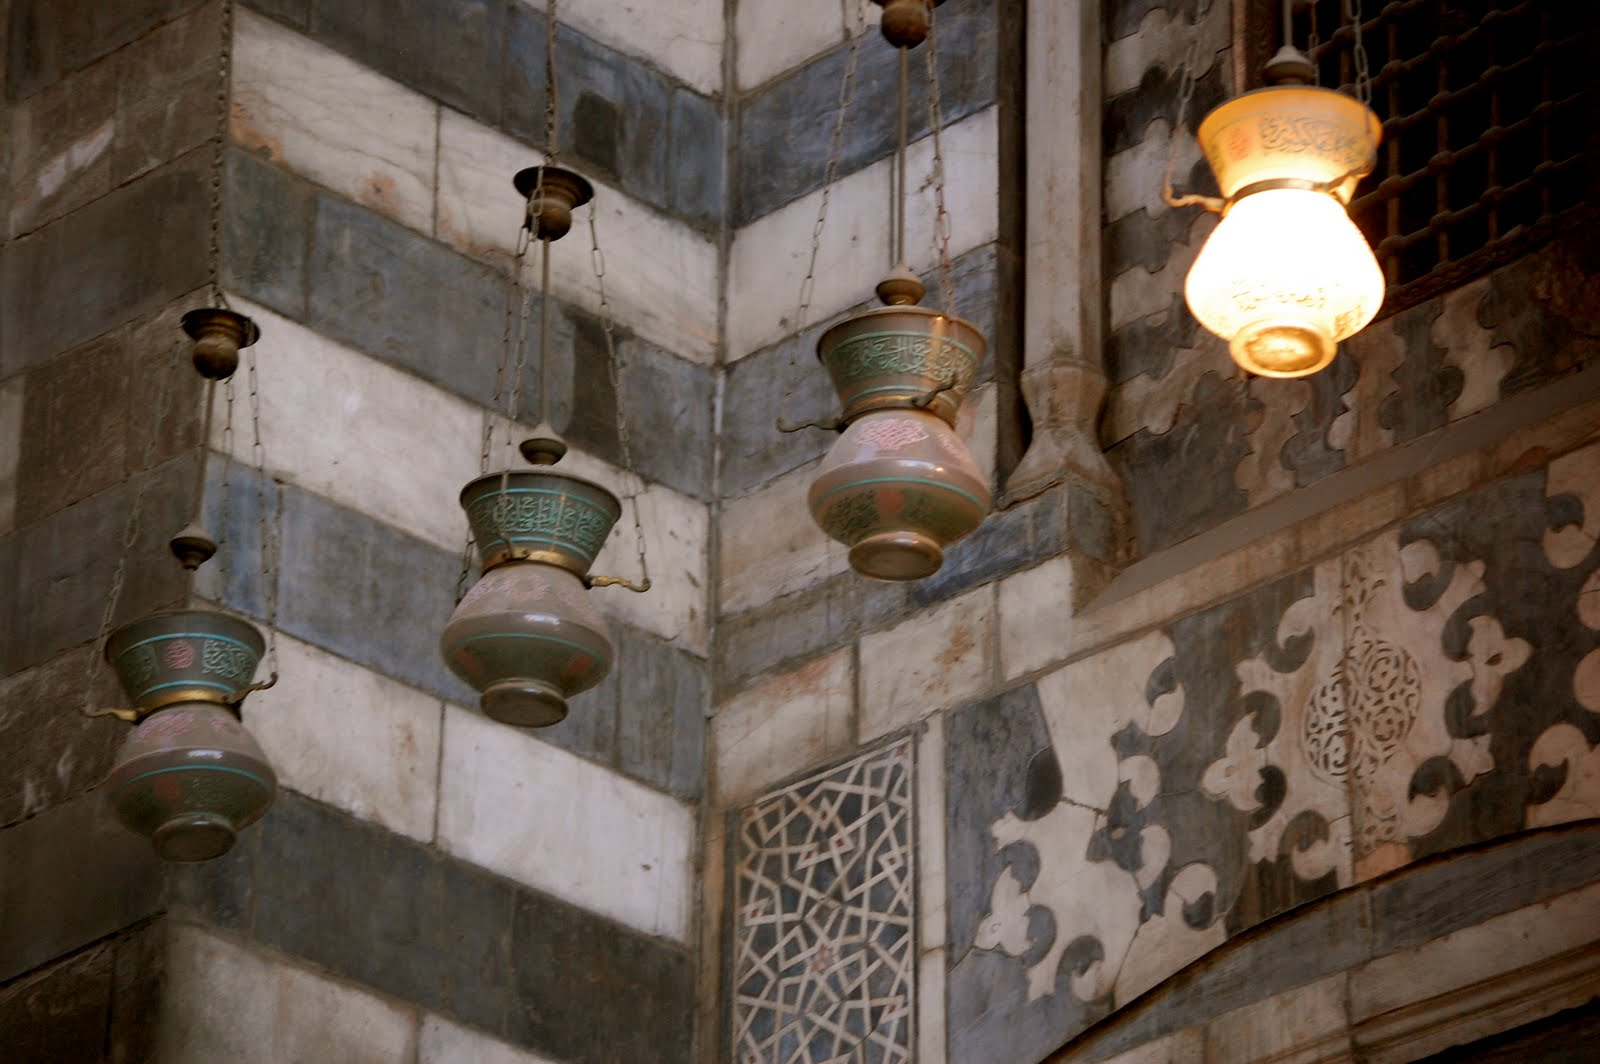 Lamps hanging in the entranceway of Sultan al-Ghuri's complex. (Photo by author)